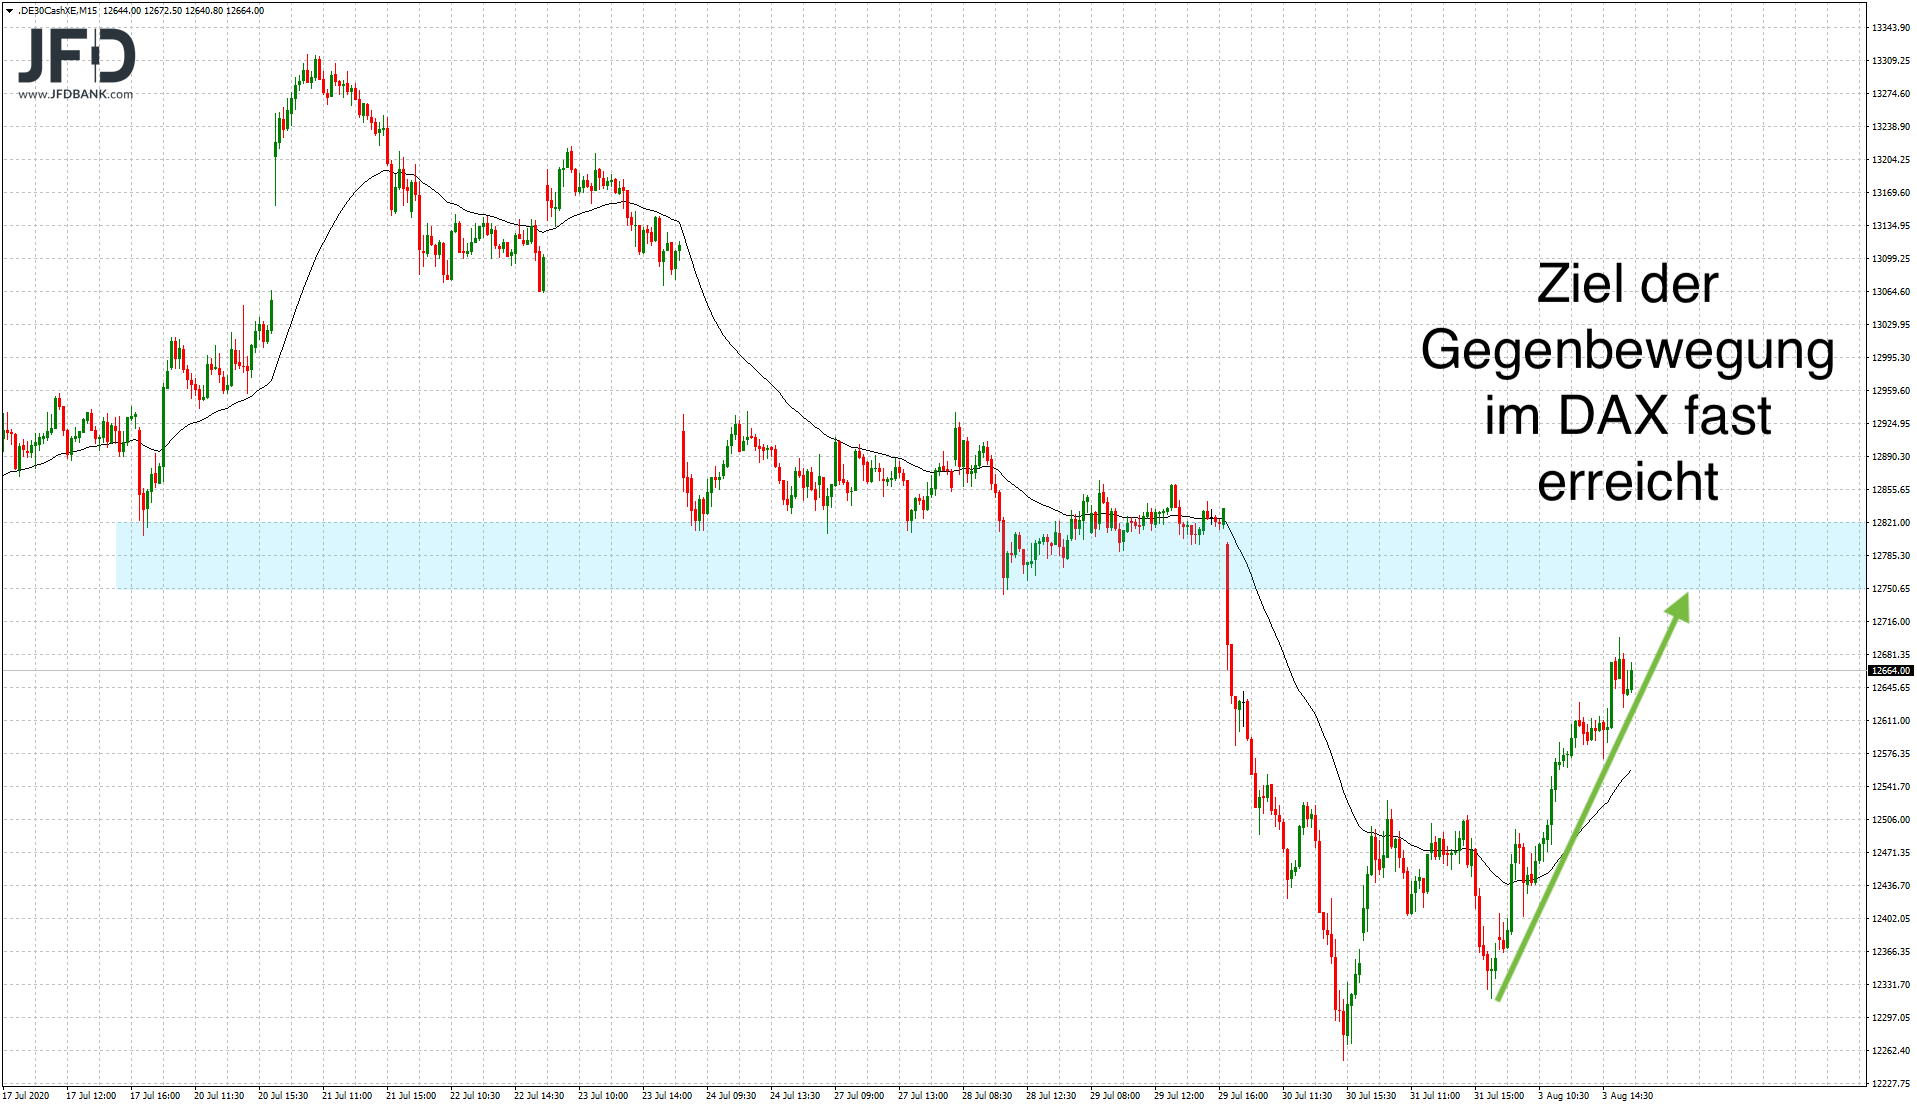 DAX-Start-in-den-August-gelungen-Kommentar-JFD-Bank-GodmodeTrader.de-5